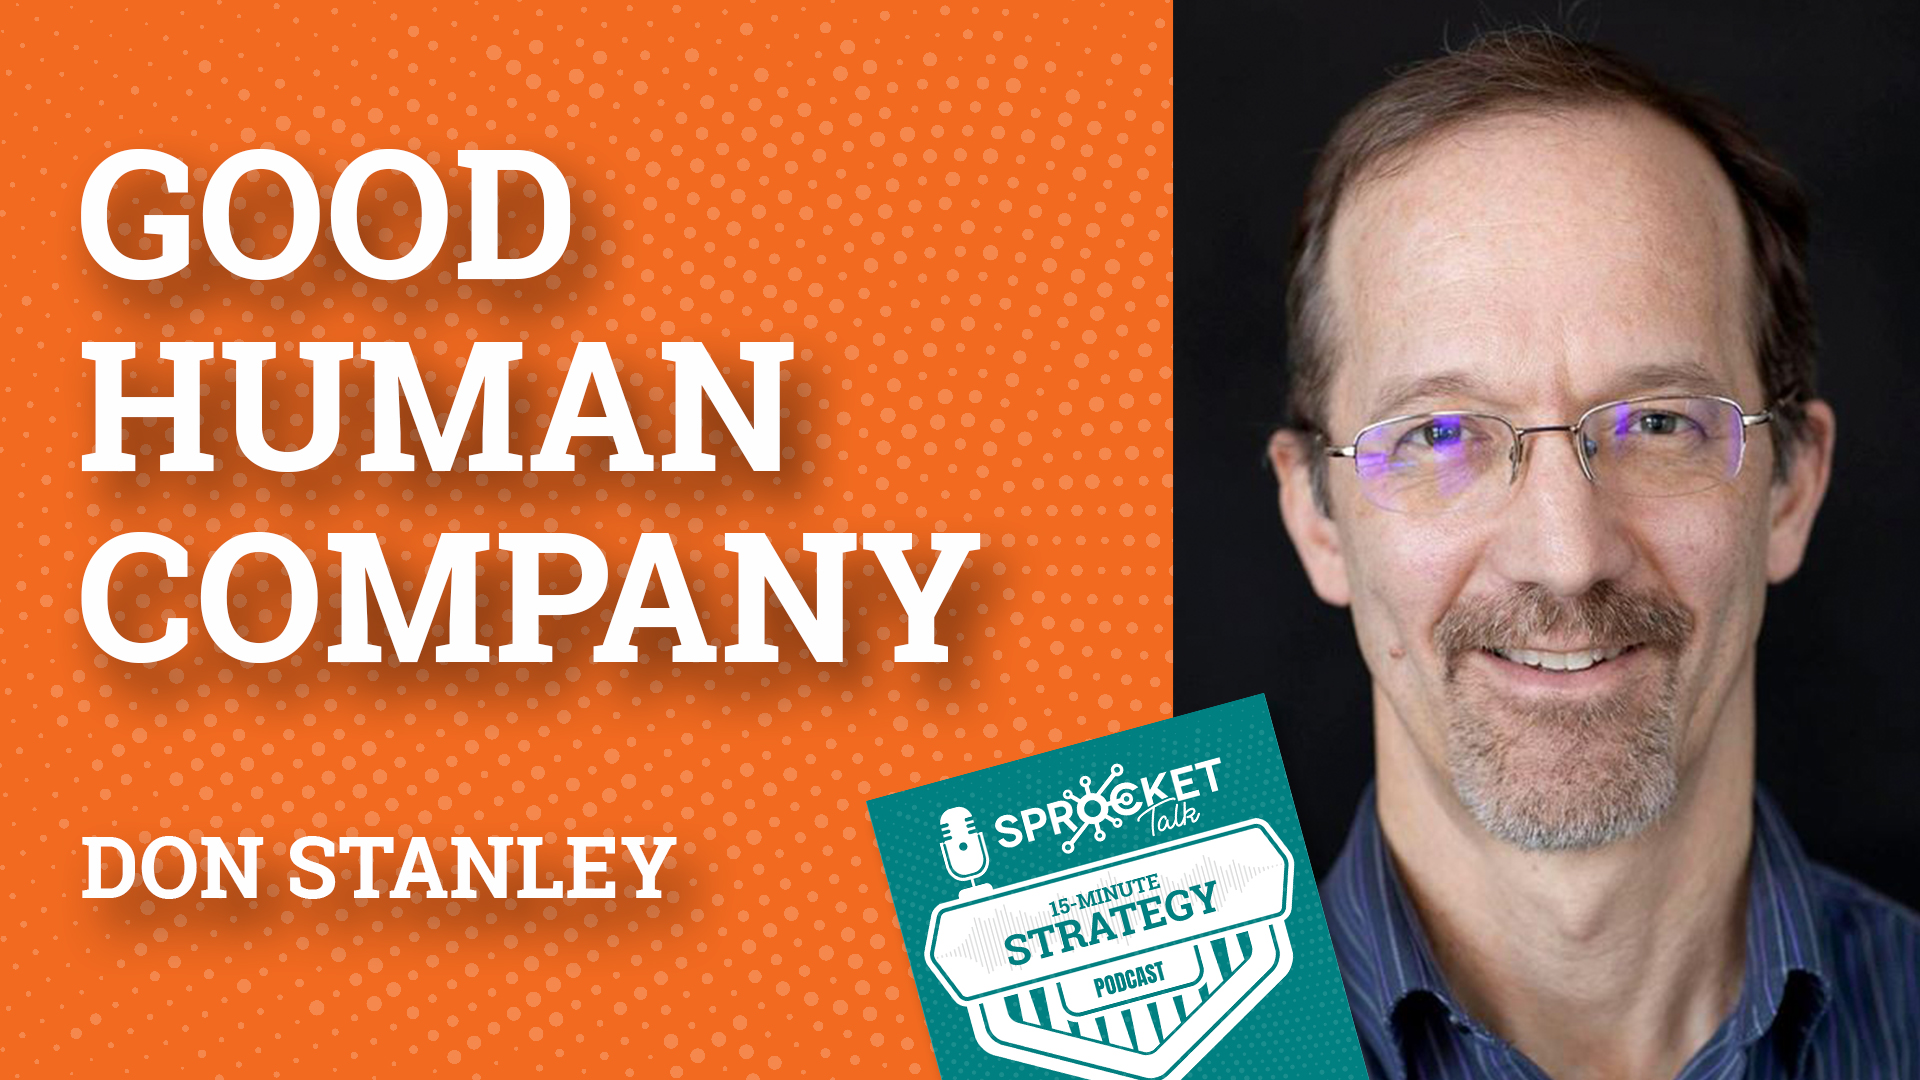 Don Stanley on The Strategy of Being A Good Human Company | 15-Minute Strategy Podcast